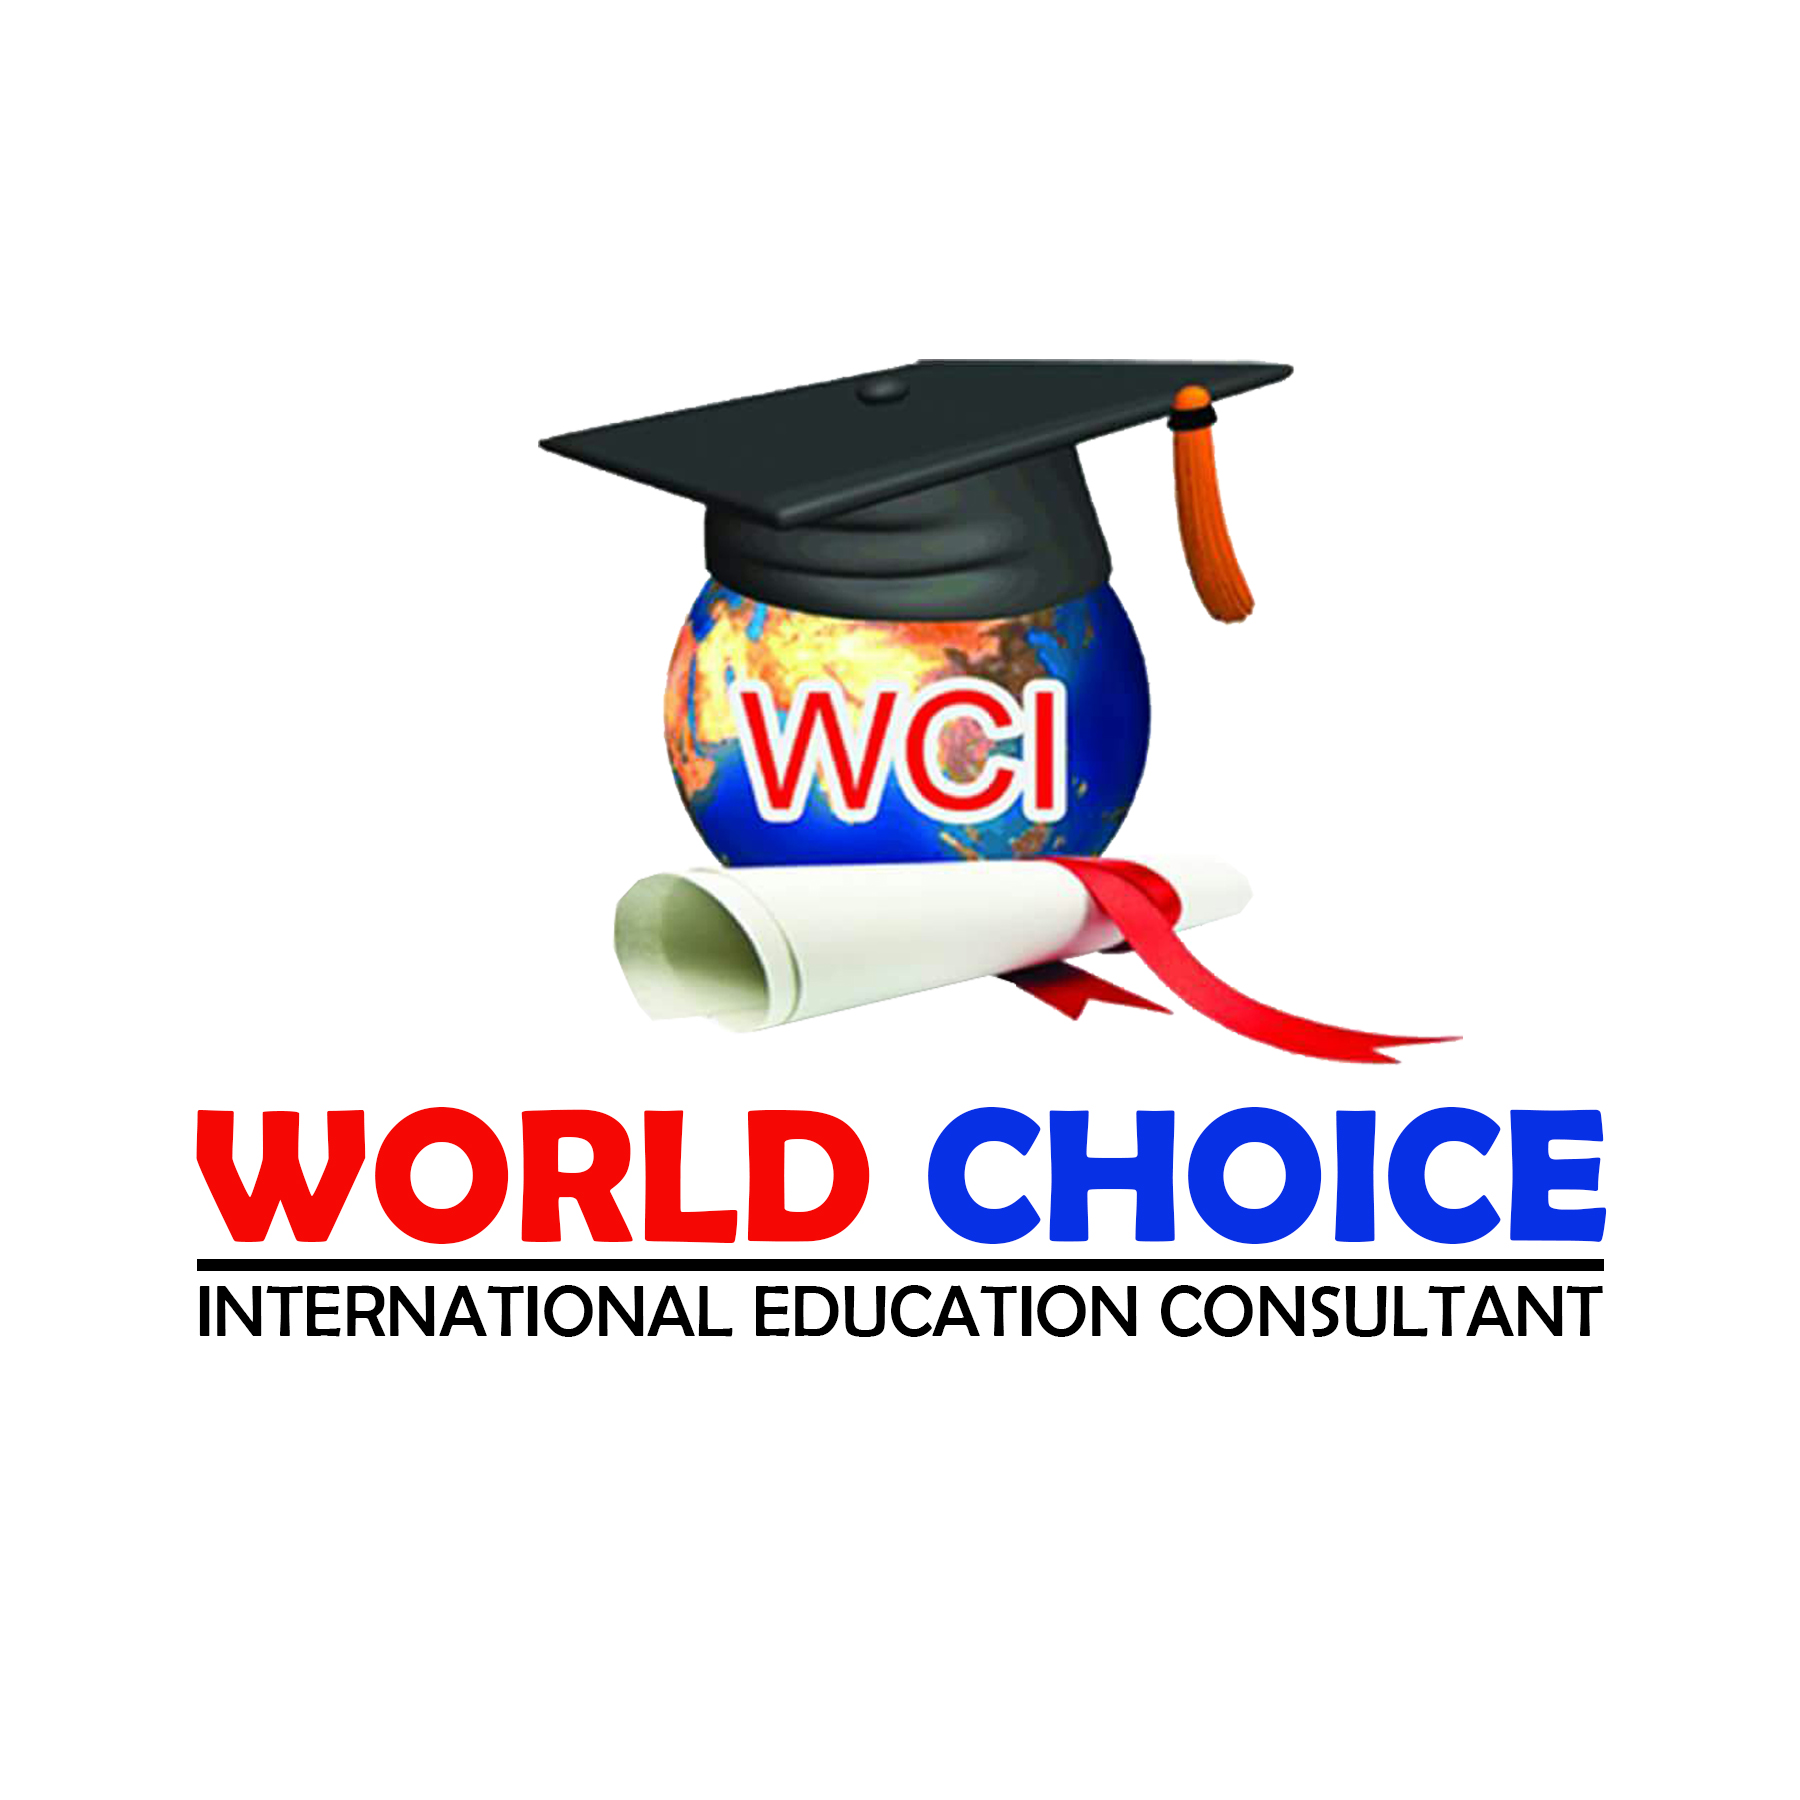 World Choice International Education Consultant